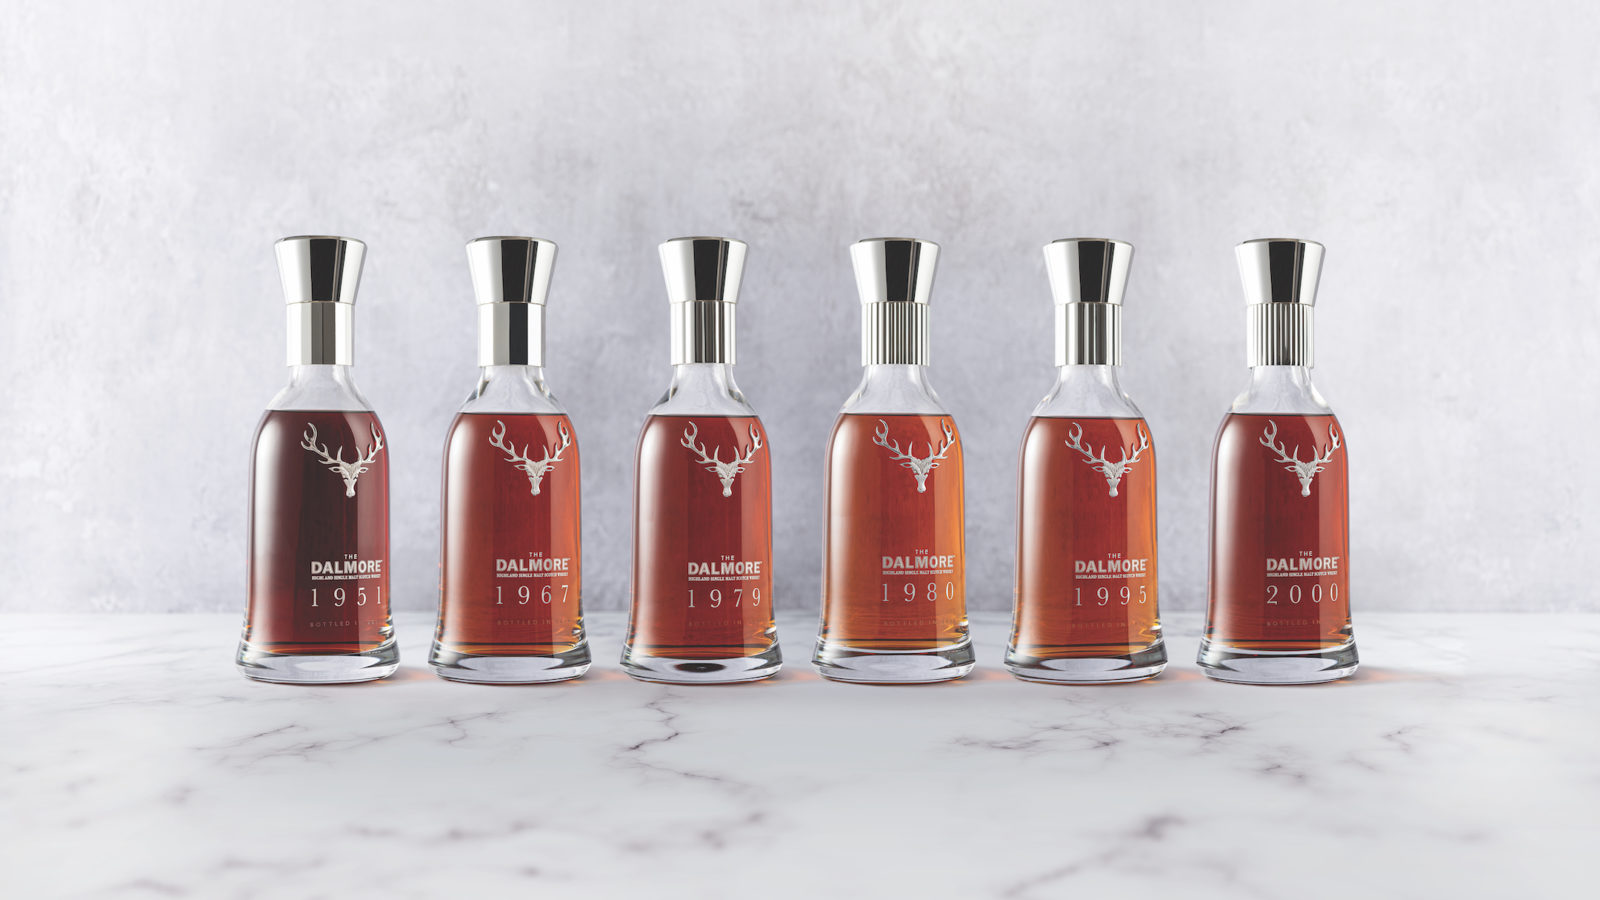 Alchemy at Six: The Dalmore Decades No 6 Collection